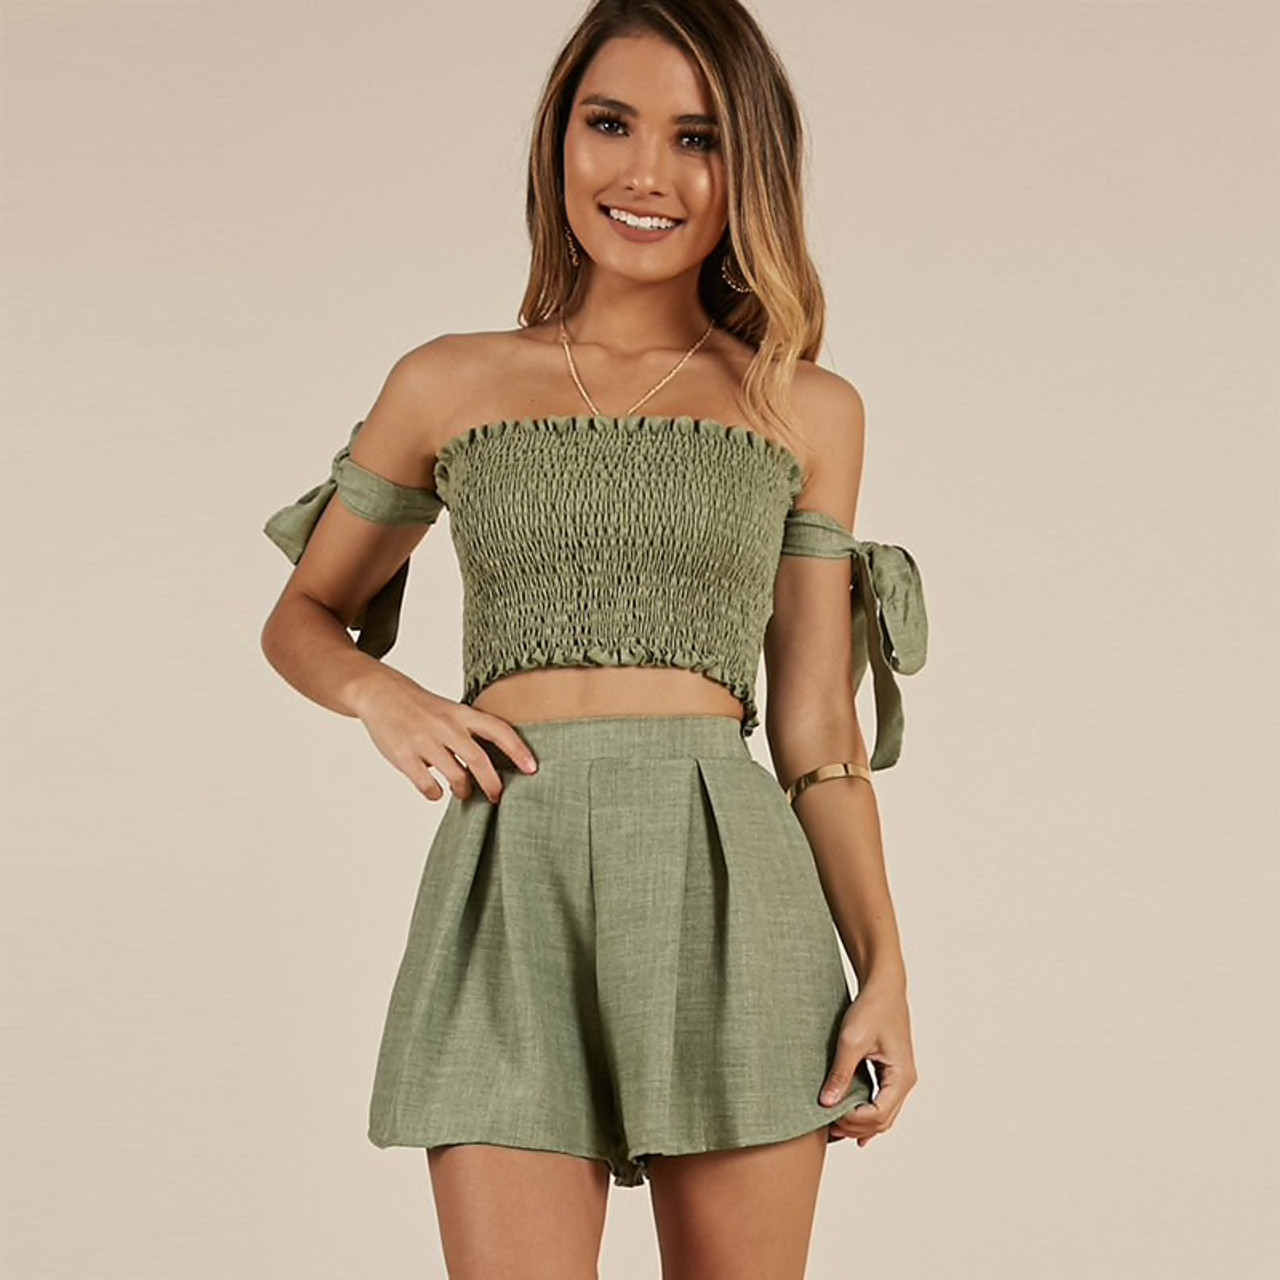 c30c55fd9ec13 2-Piece-Set-Women-Outfits-Strapless-Tie-Sleeve-Tube-Crop-Top-And-High-Waist- Shorts-Two copy  66975.1551152925.jpg c 2 imbypass on